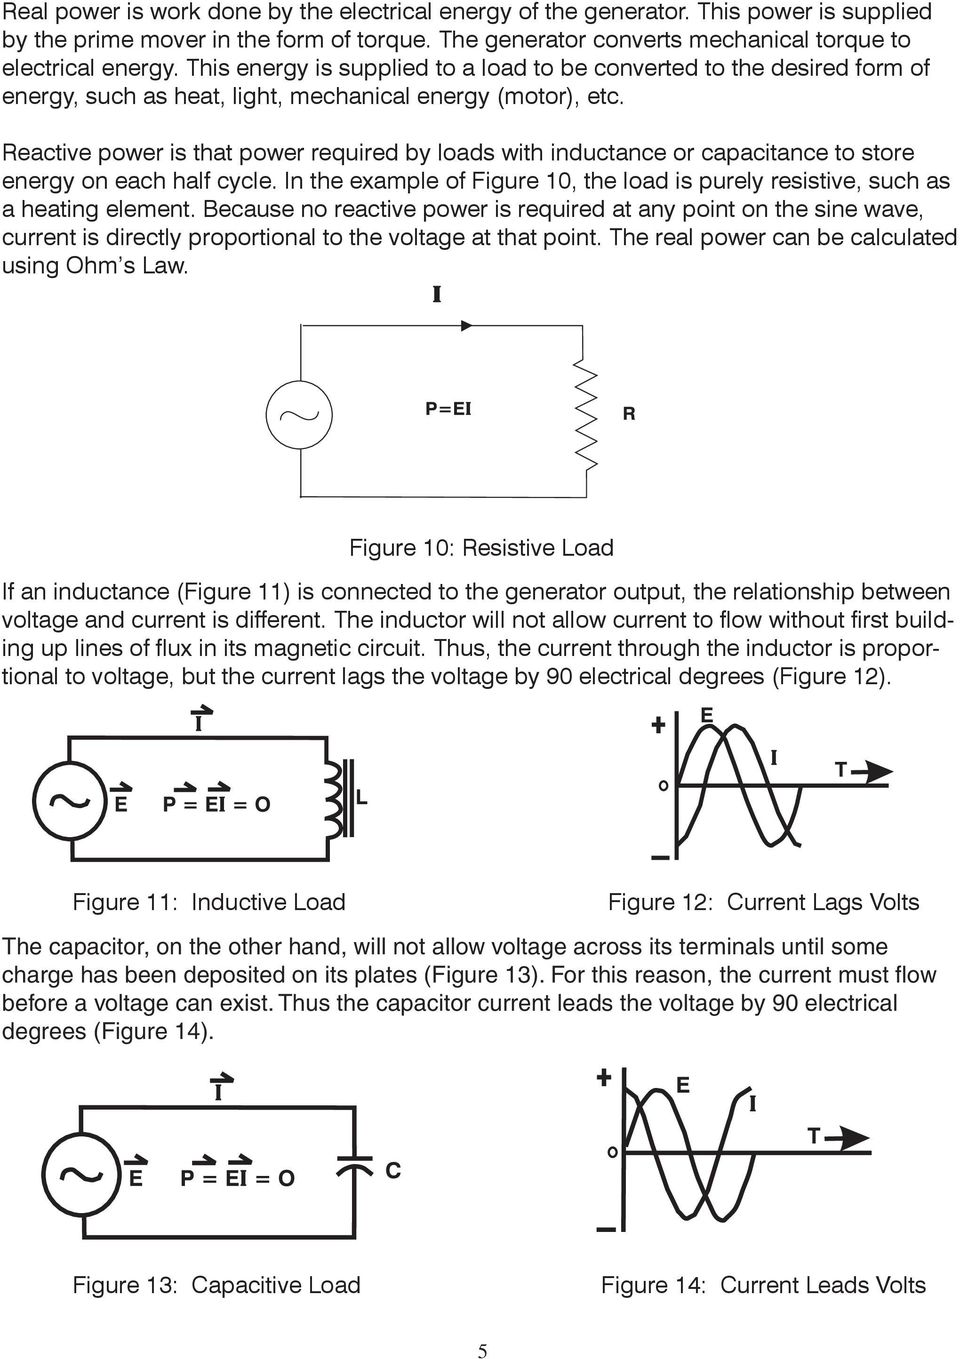 Voltage Regulator And Parallel Operation Pdf Inductor Is Proportional To The Inductance This Circuit Reads Reactive Power That Required By Loads With Or Capacitance Store Energy On